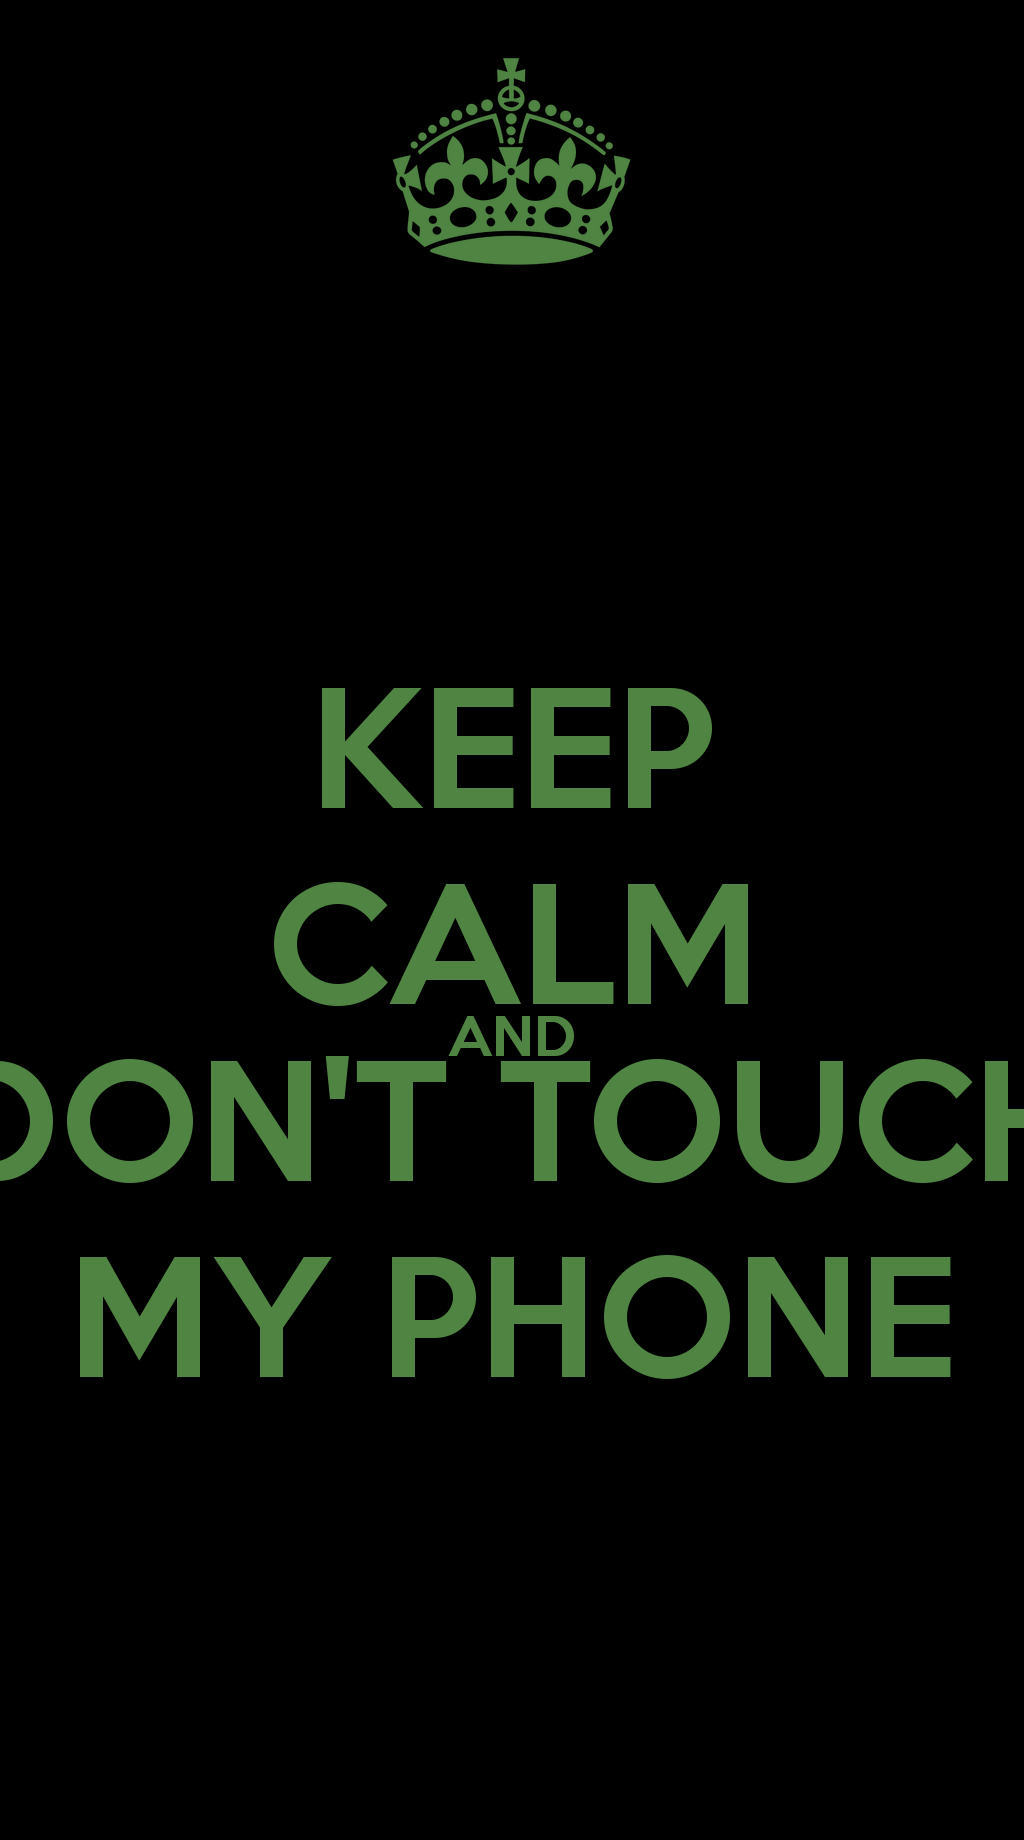 Wallpaper don 39 t touch my phone wallpapersafari - Don t touch my ipad wallpaper ...